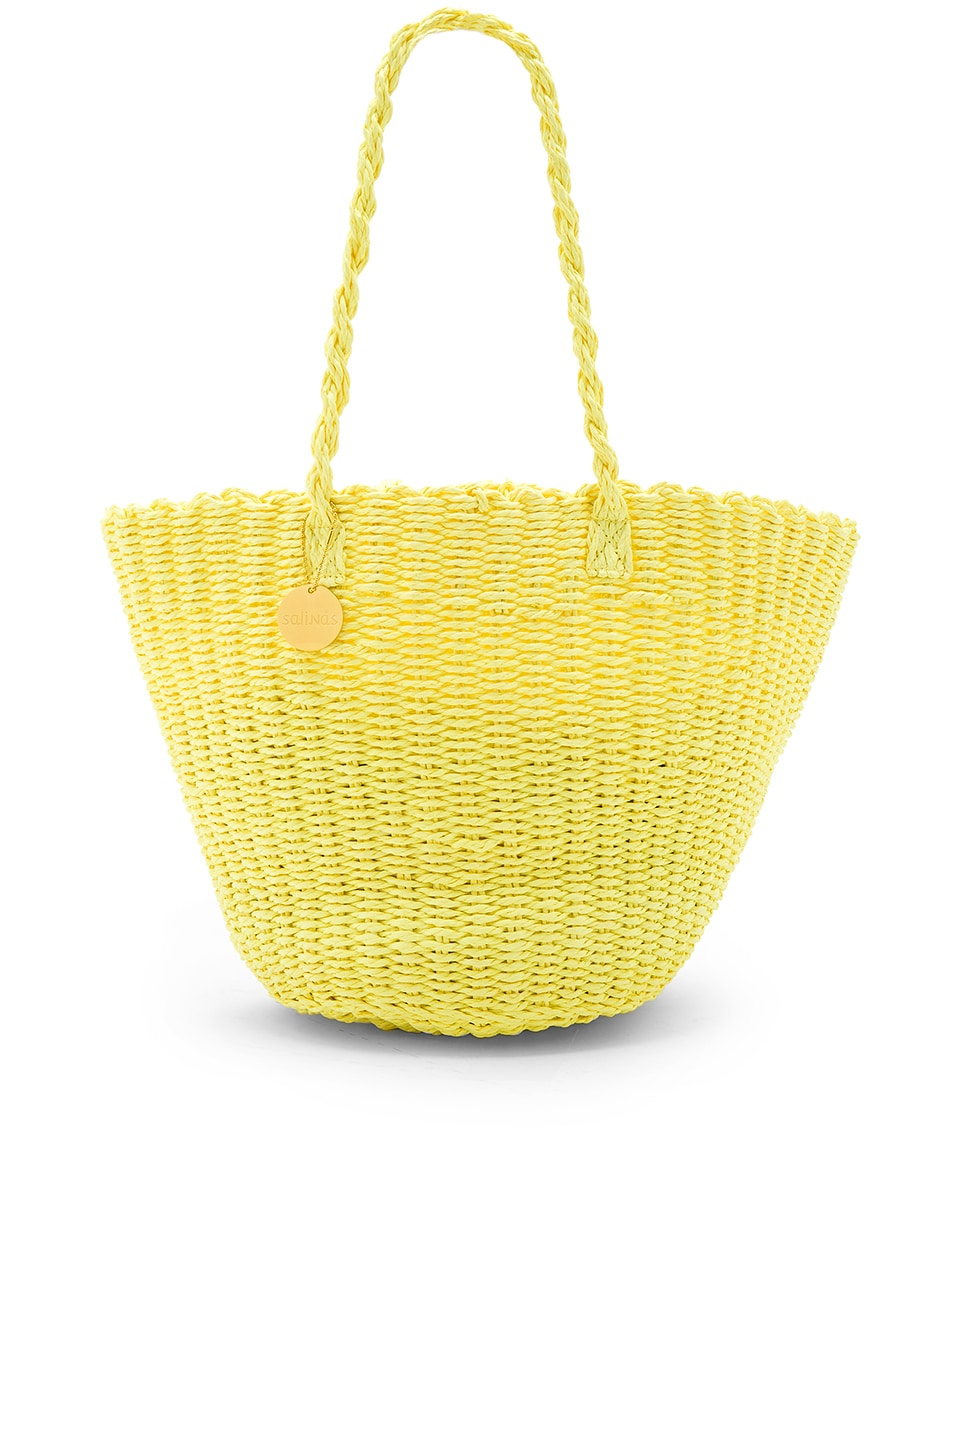 Beach Bag by Salinas